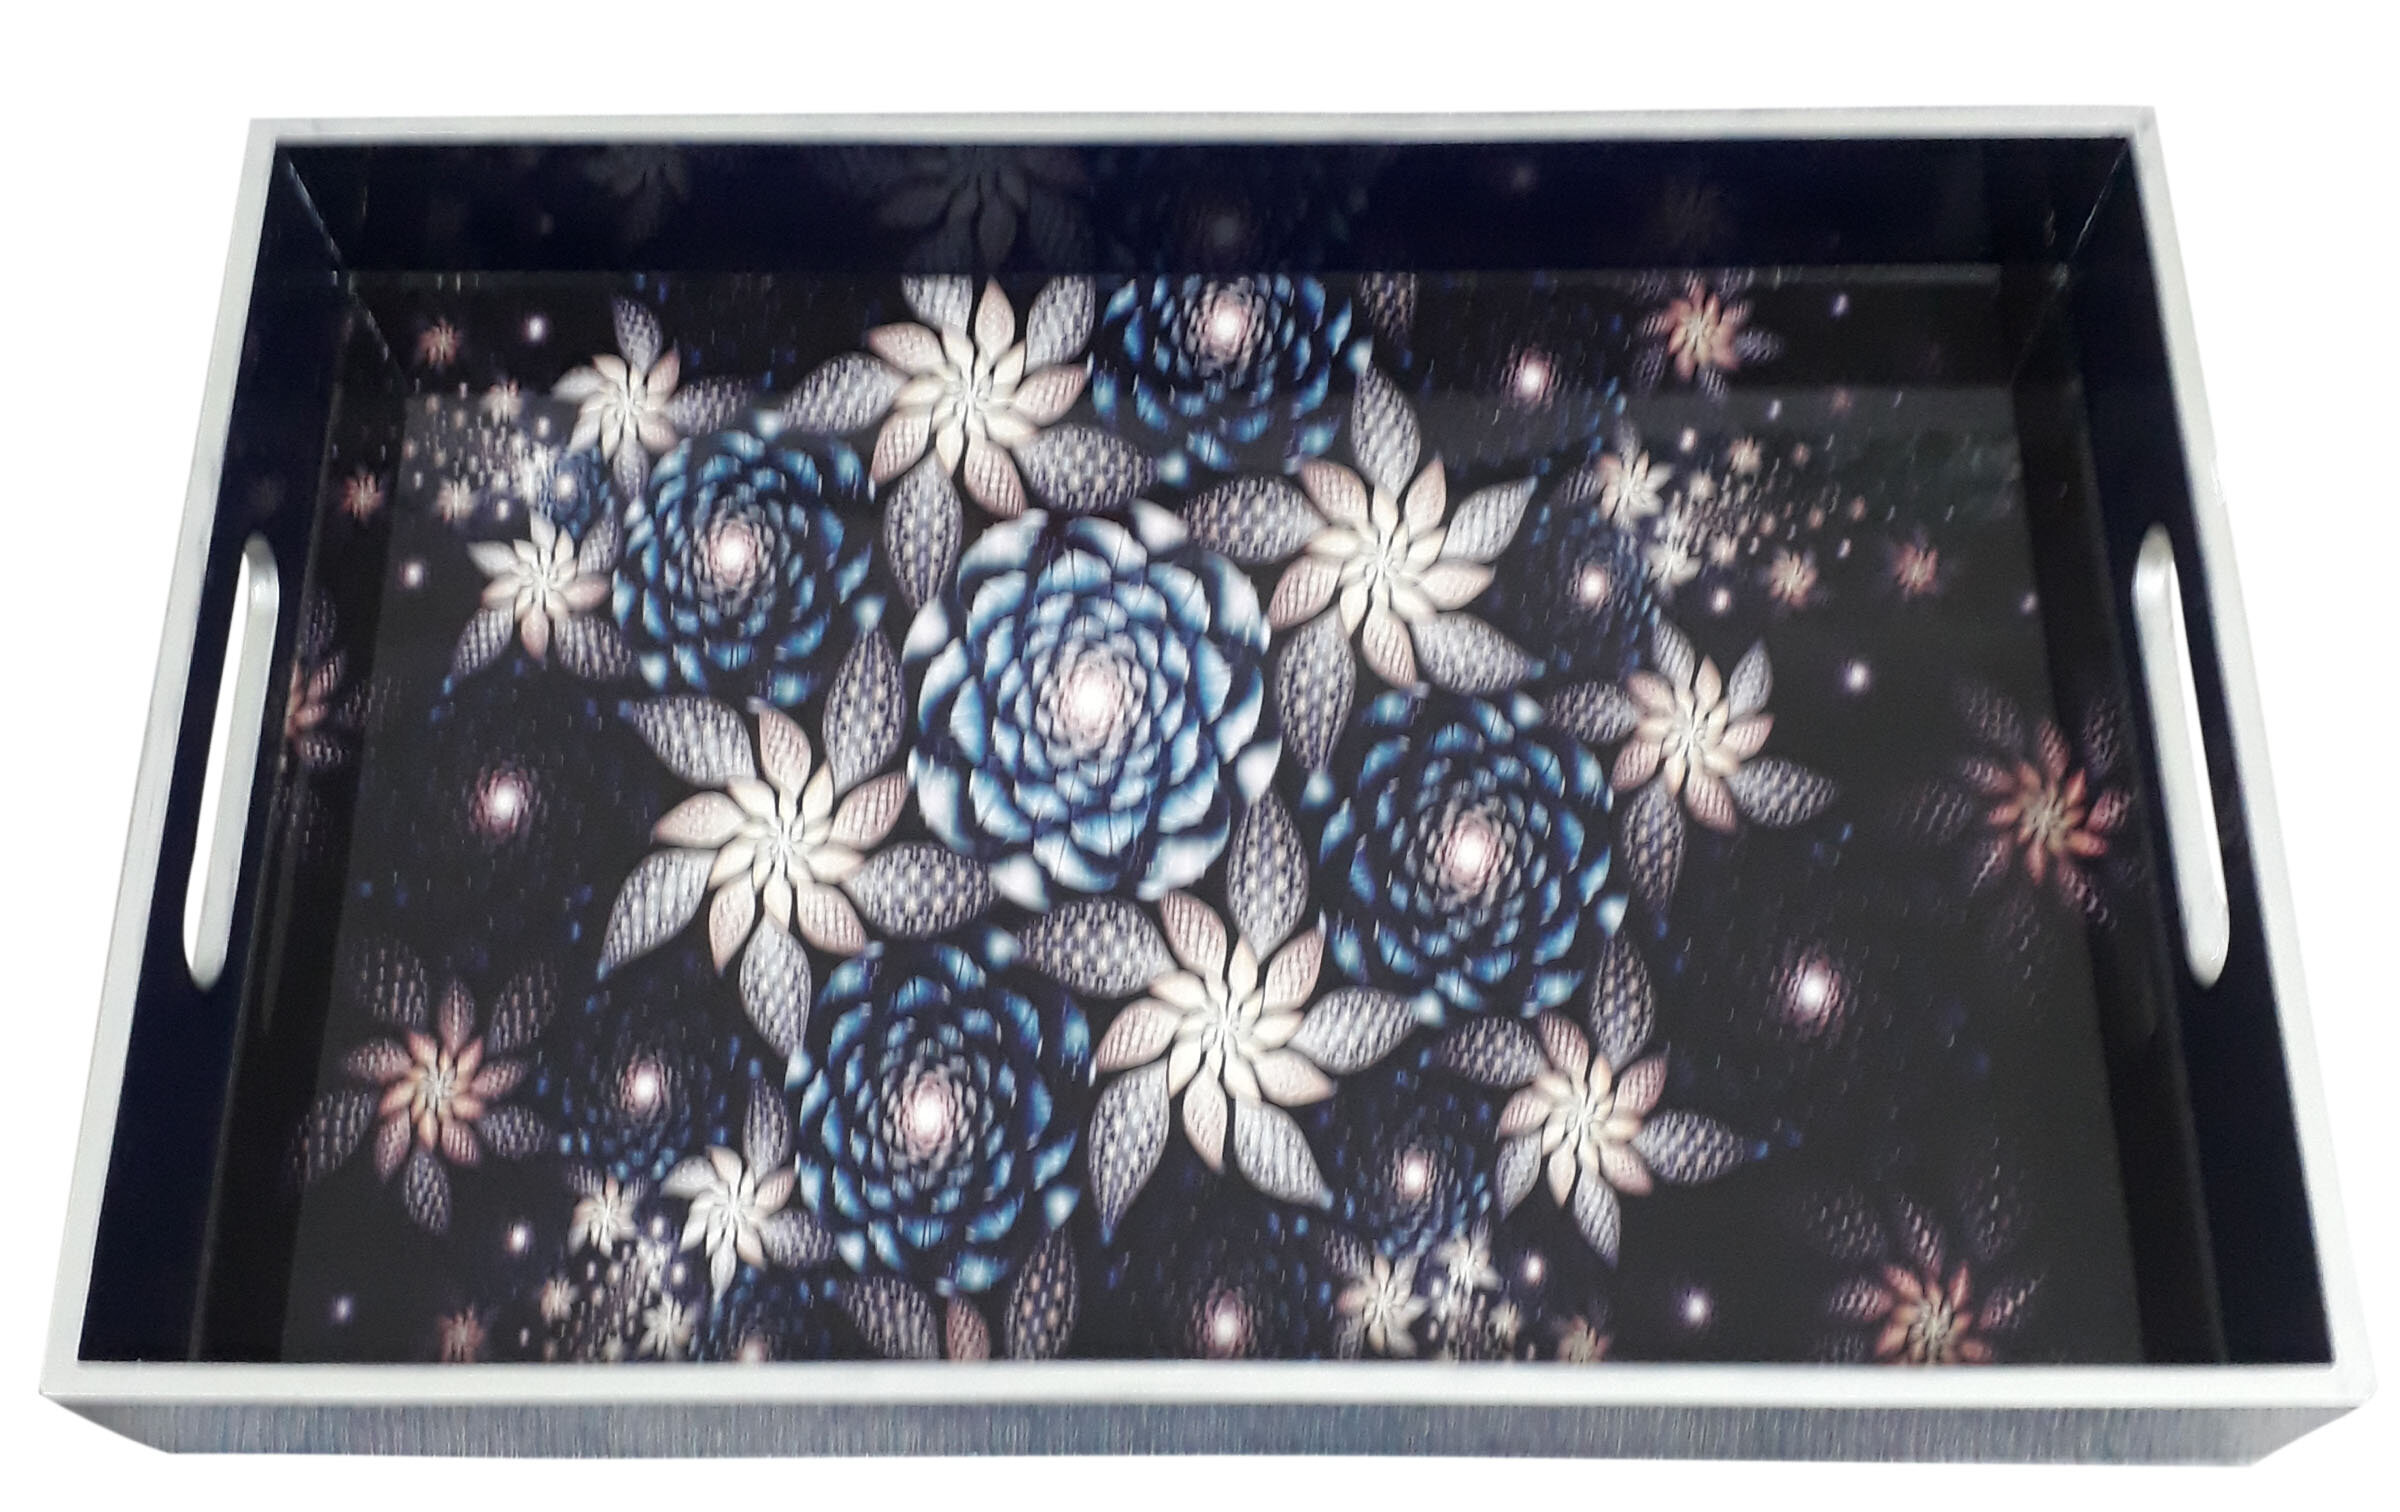 Rectg. Tray L size-Fractical Silver Flowers.jpg